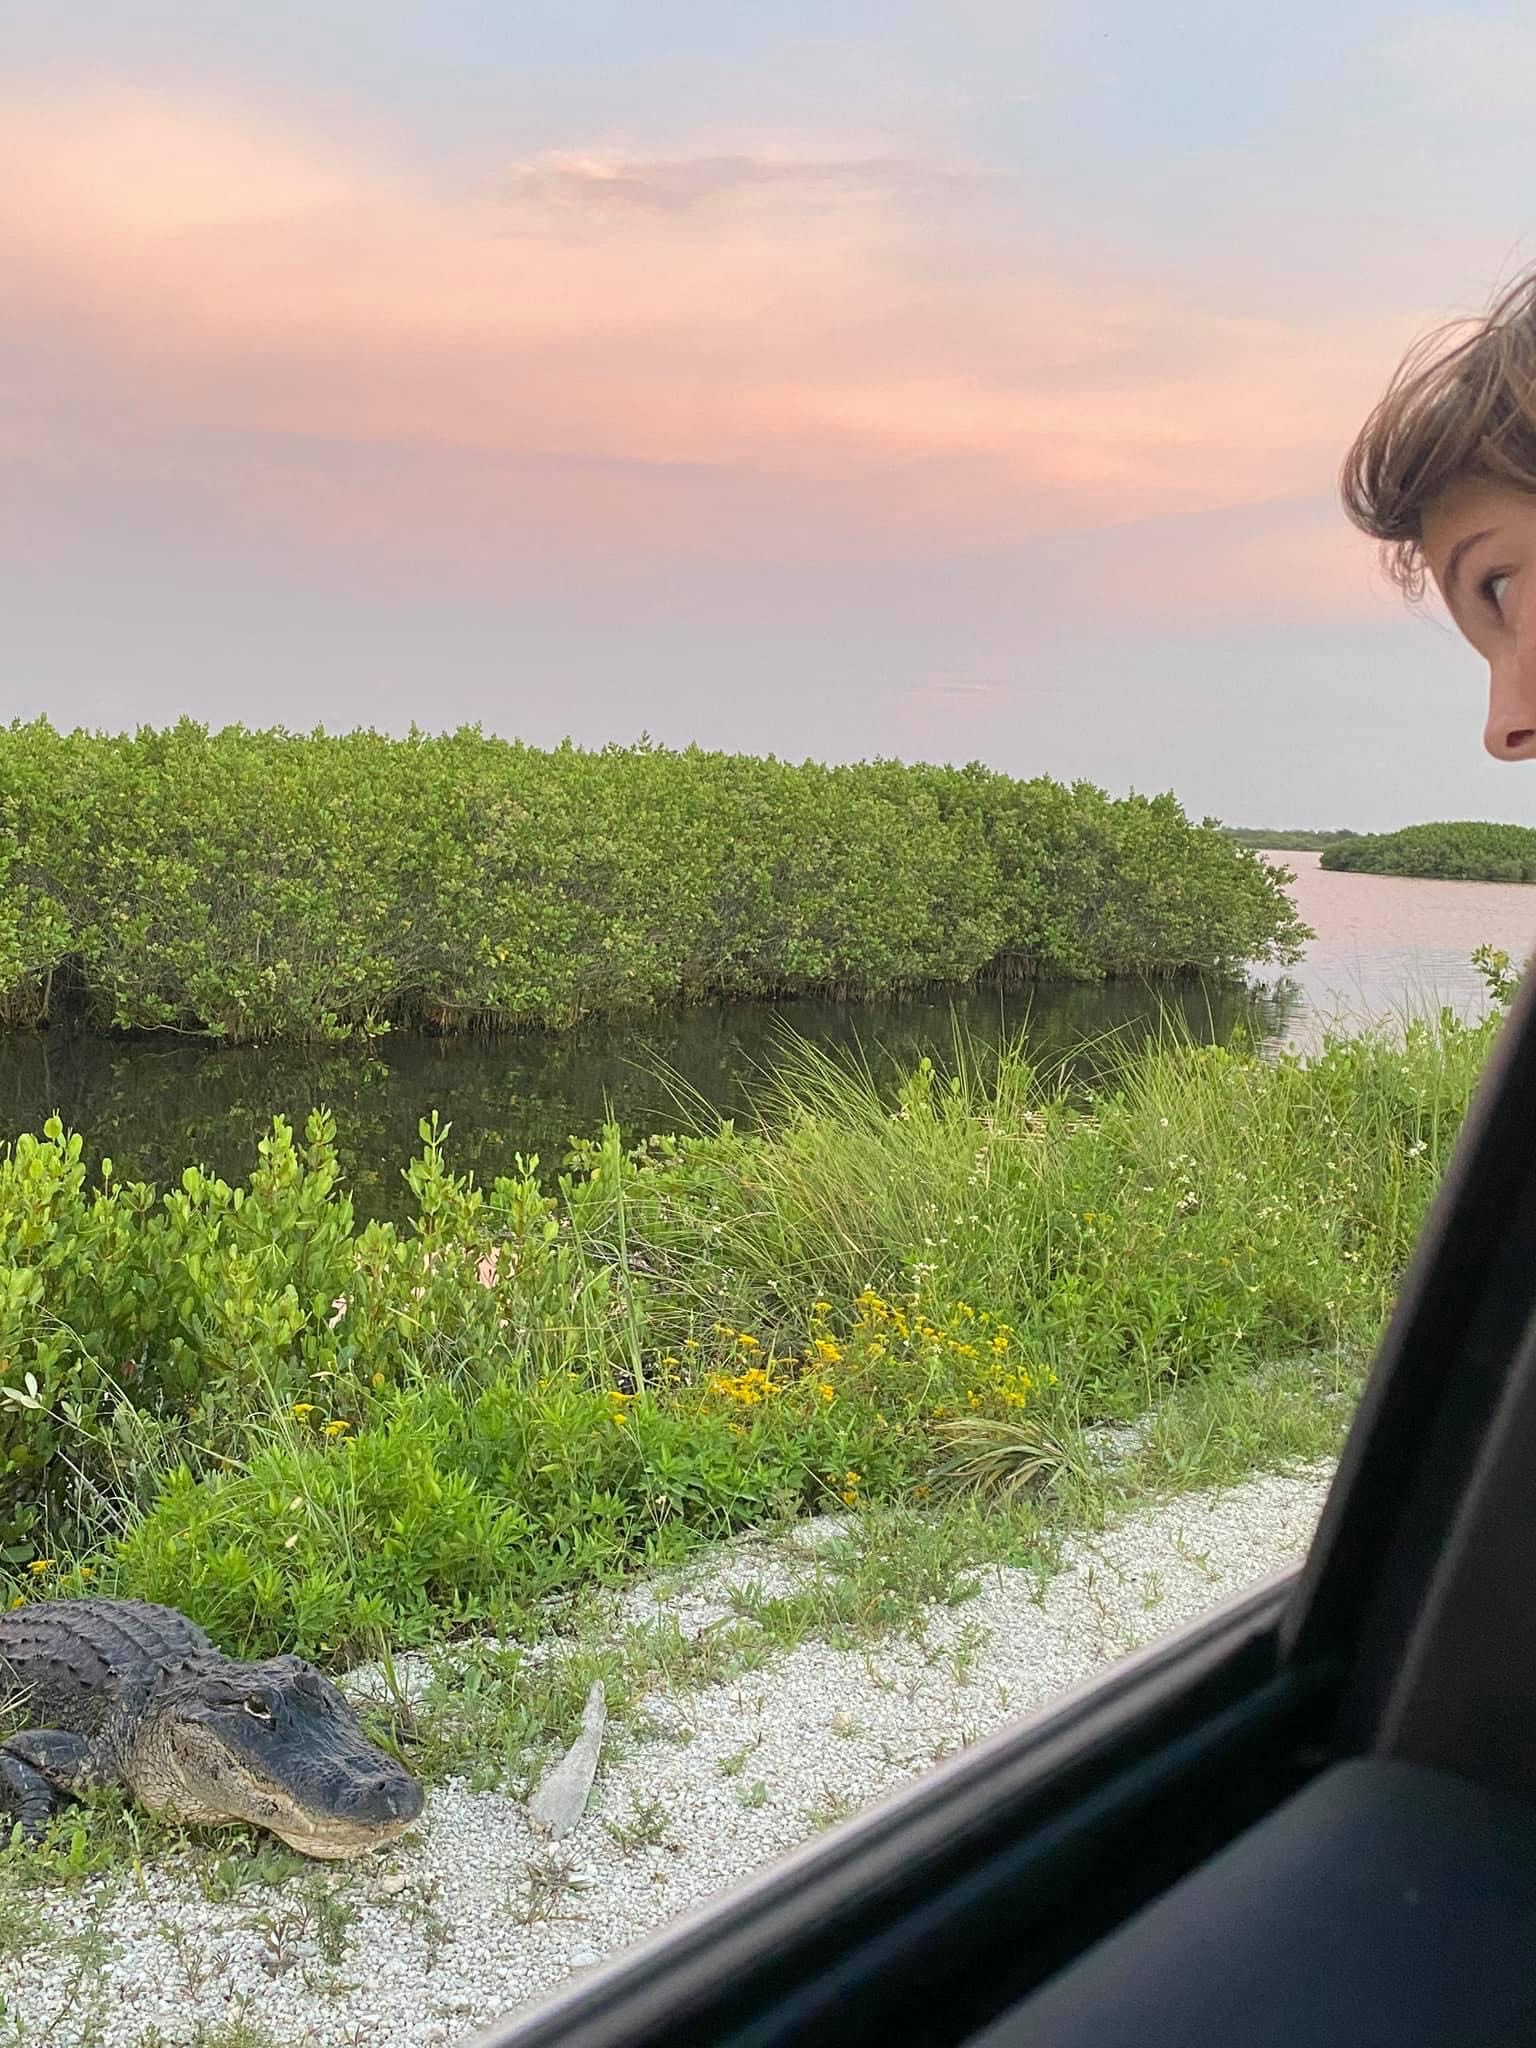 child looking out of a car window at an alligator